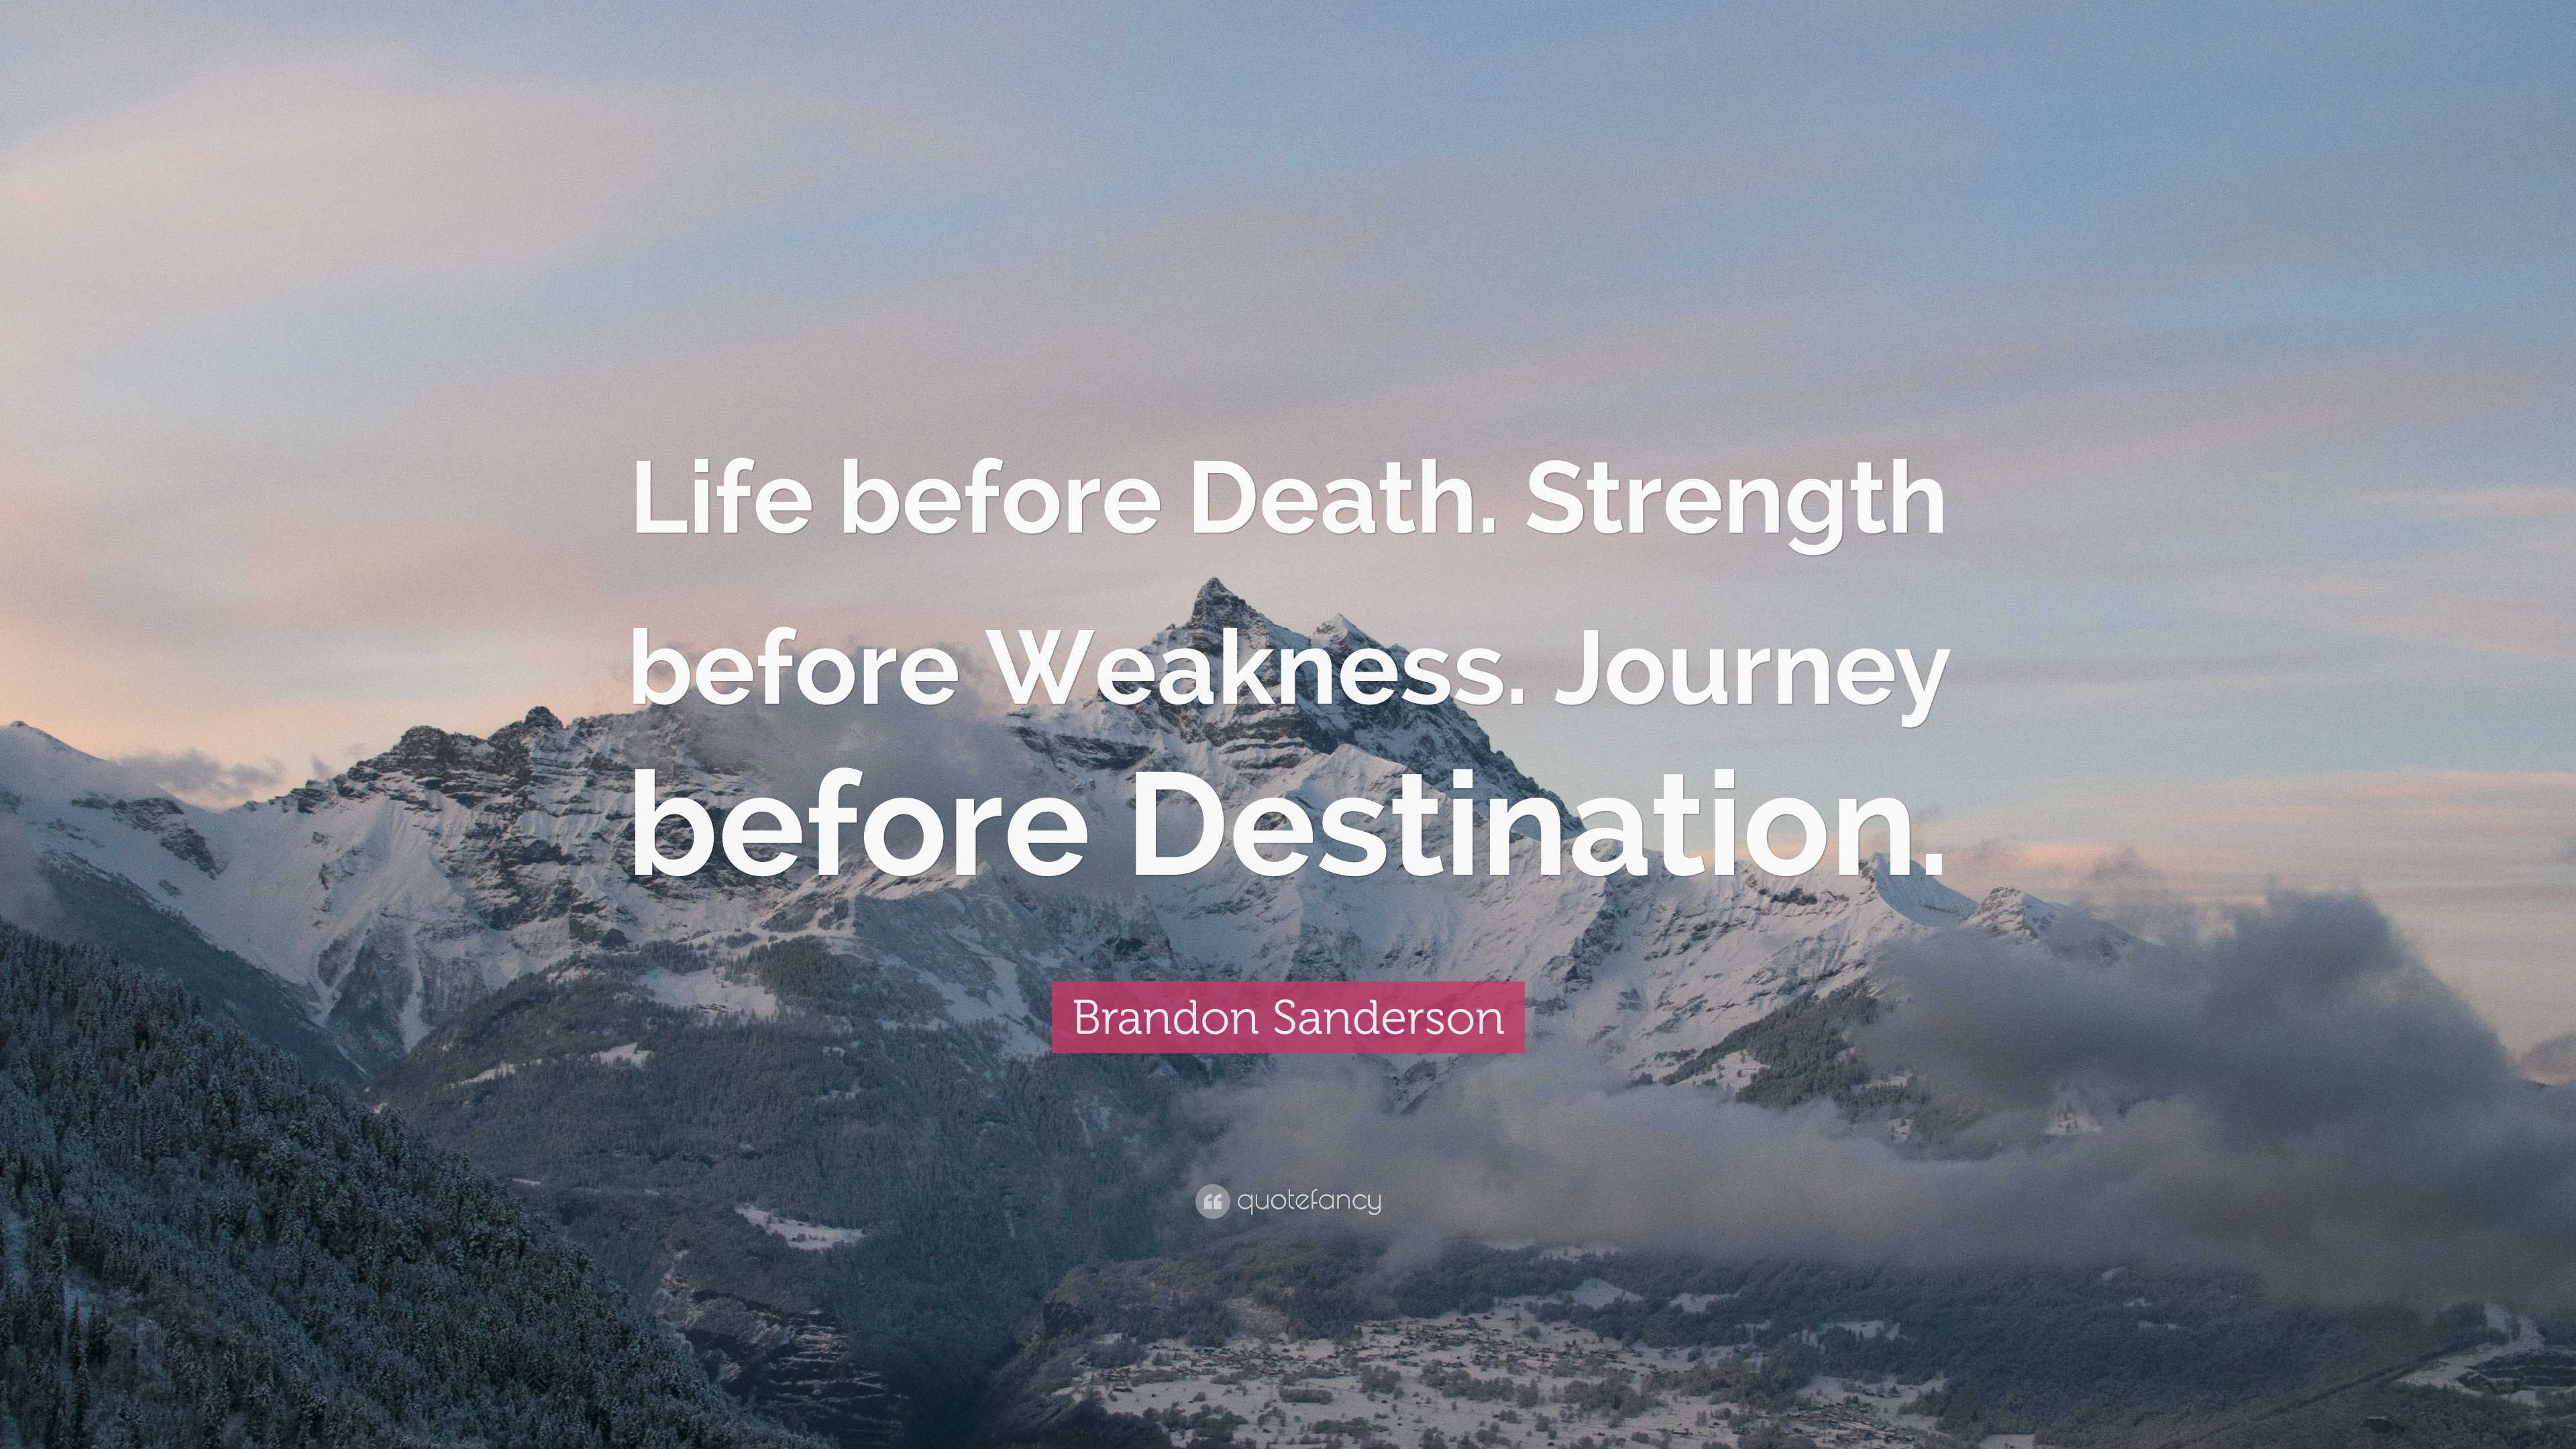 Famous Quotes About Life And Death Death And Strength Quotes